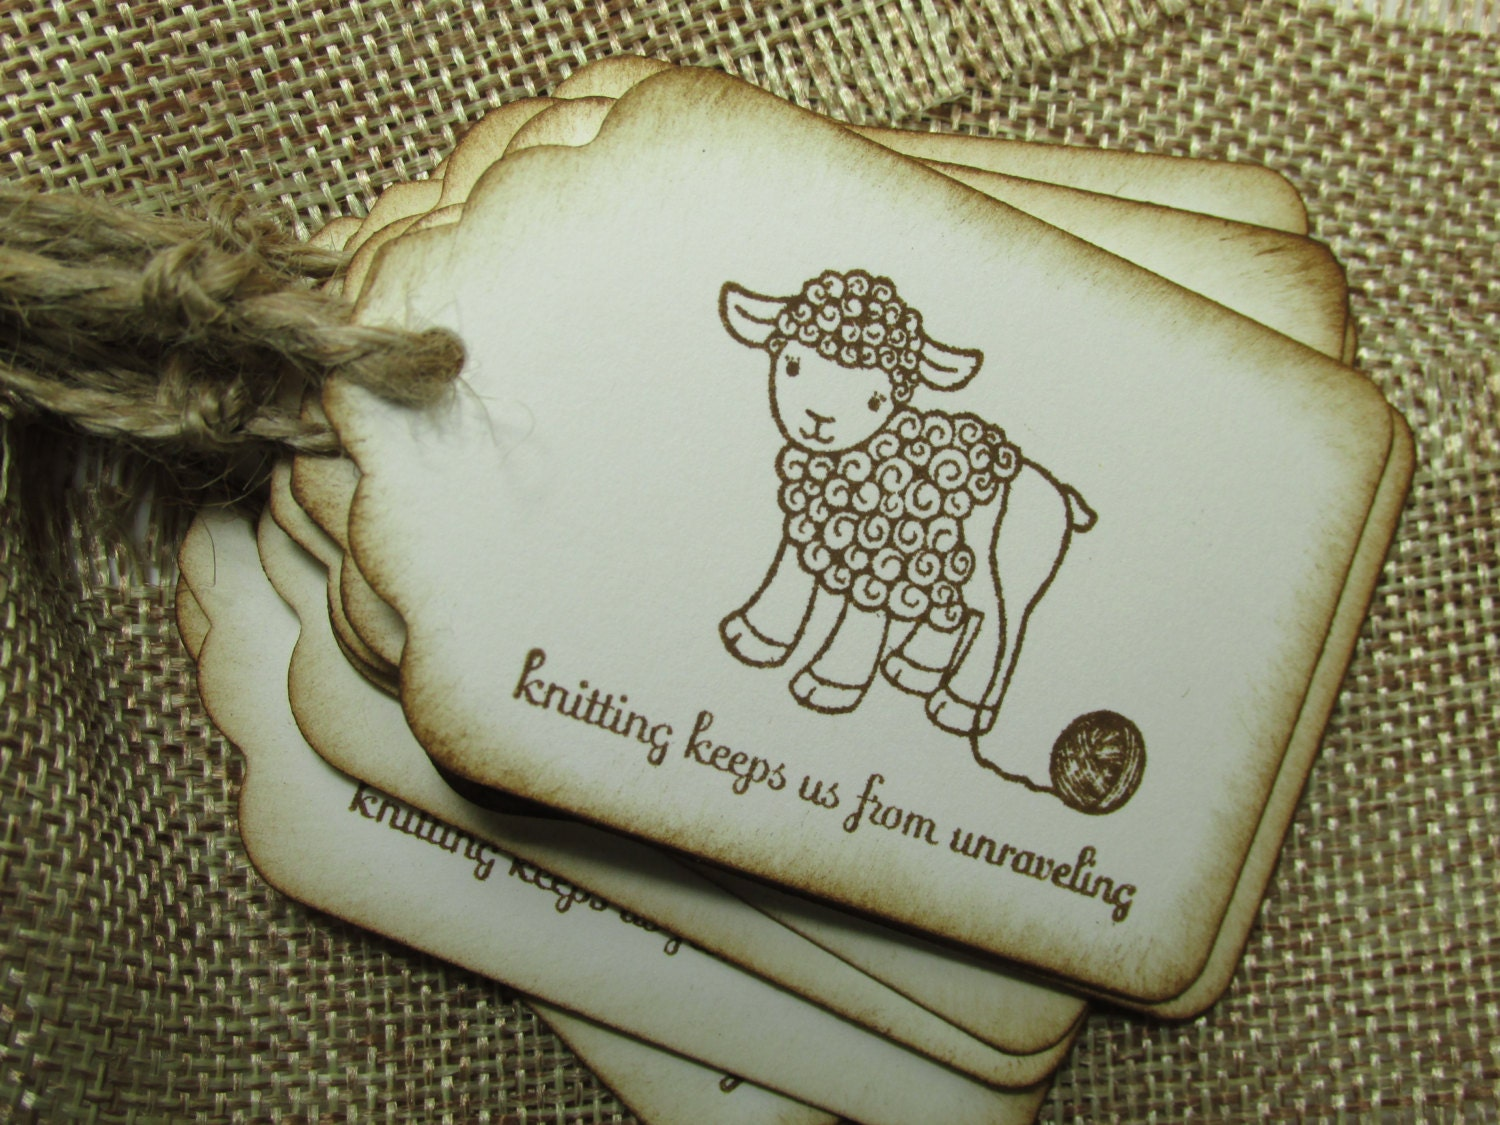 Hand Knit Labels Knitting Tags For Your Hand Knit Projects Cute Knitting Tags